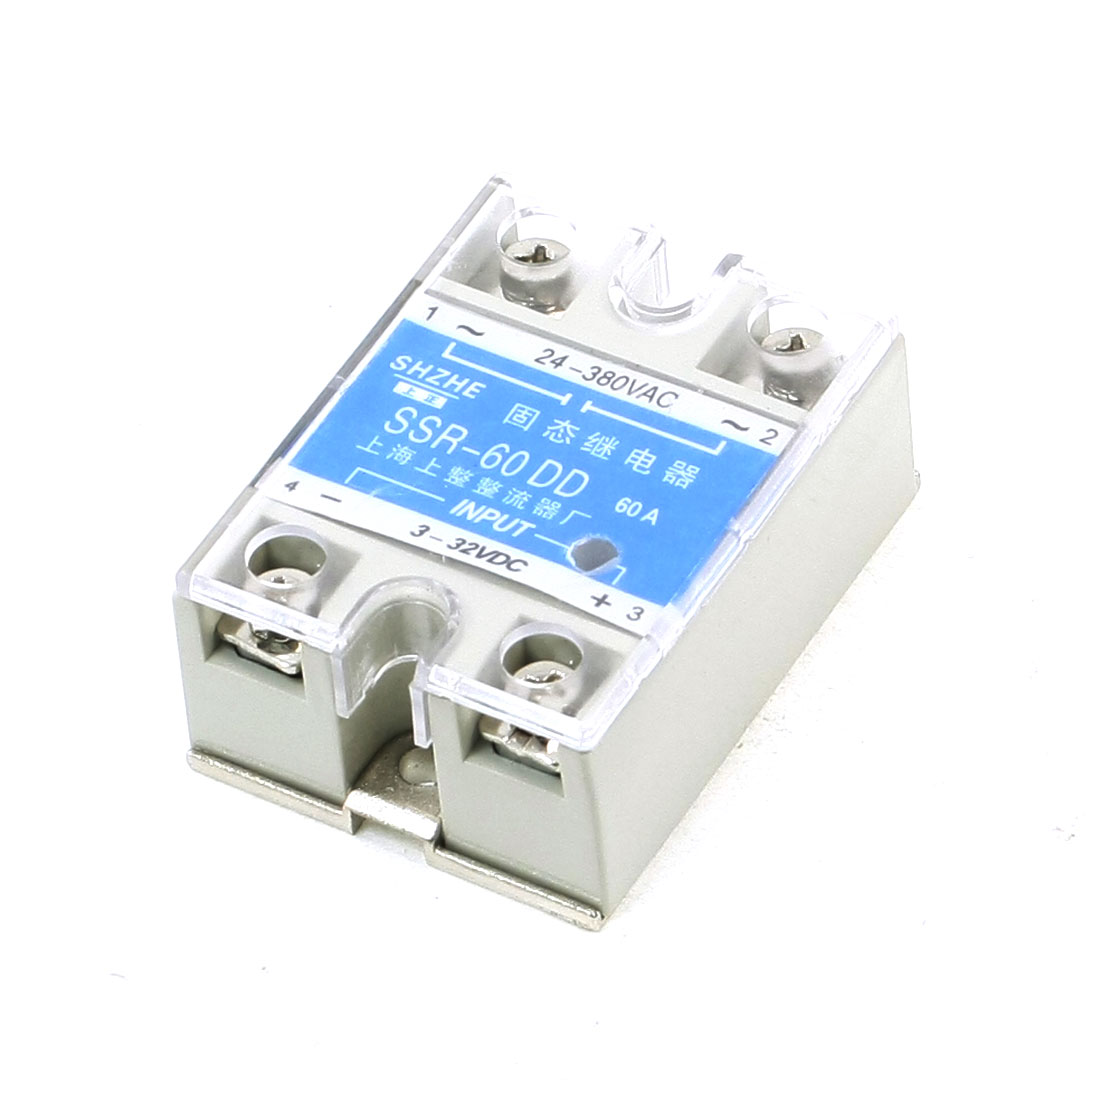 SSR-60DD DC to AC Covered Solid State Relay 24-380VAC 3-32VDC